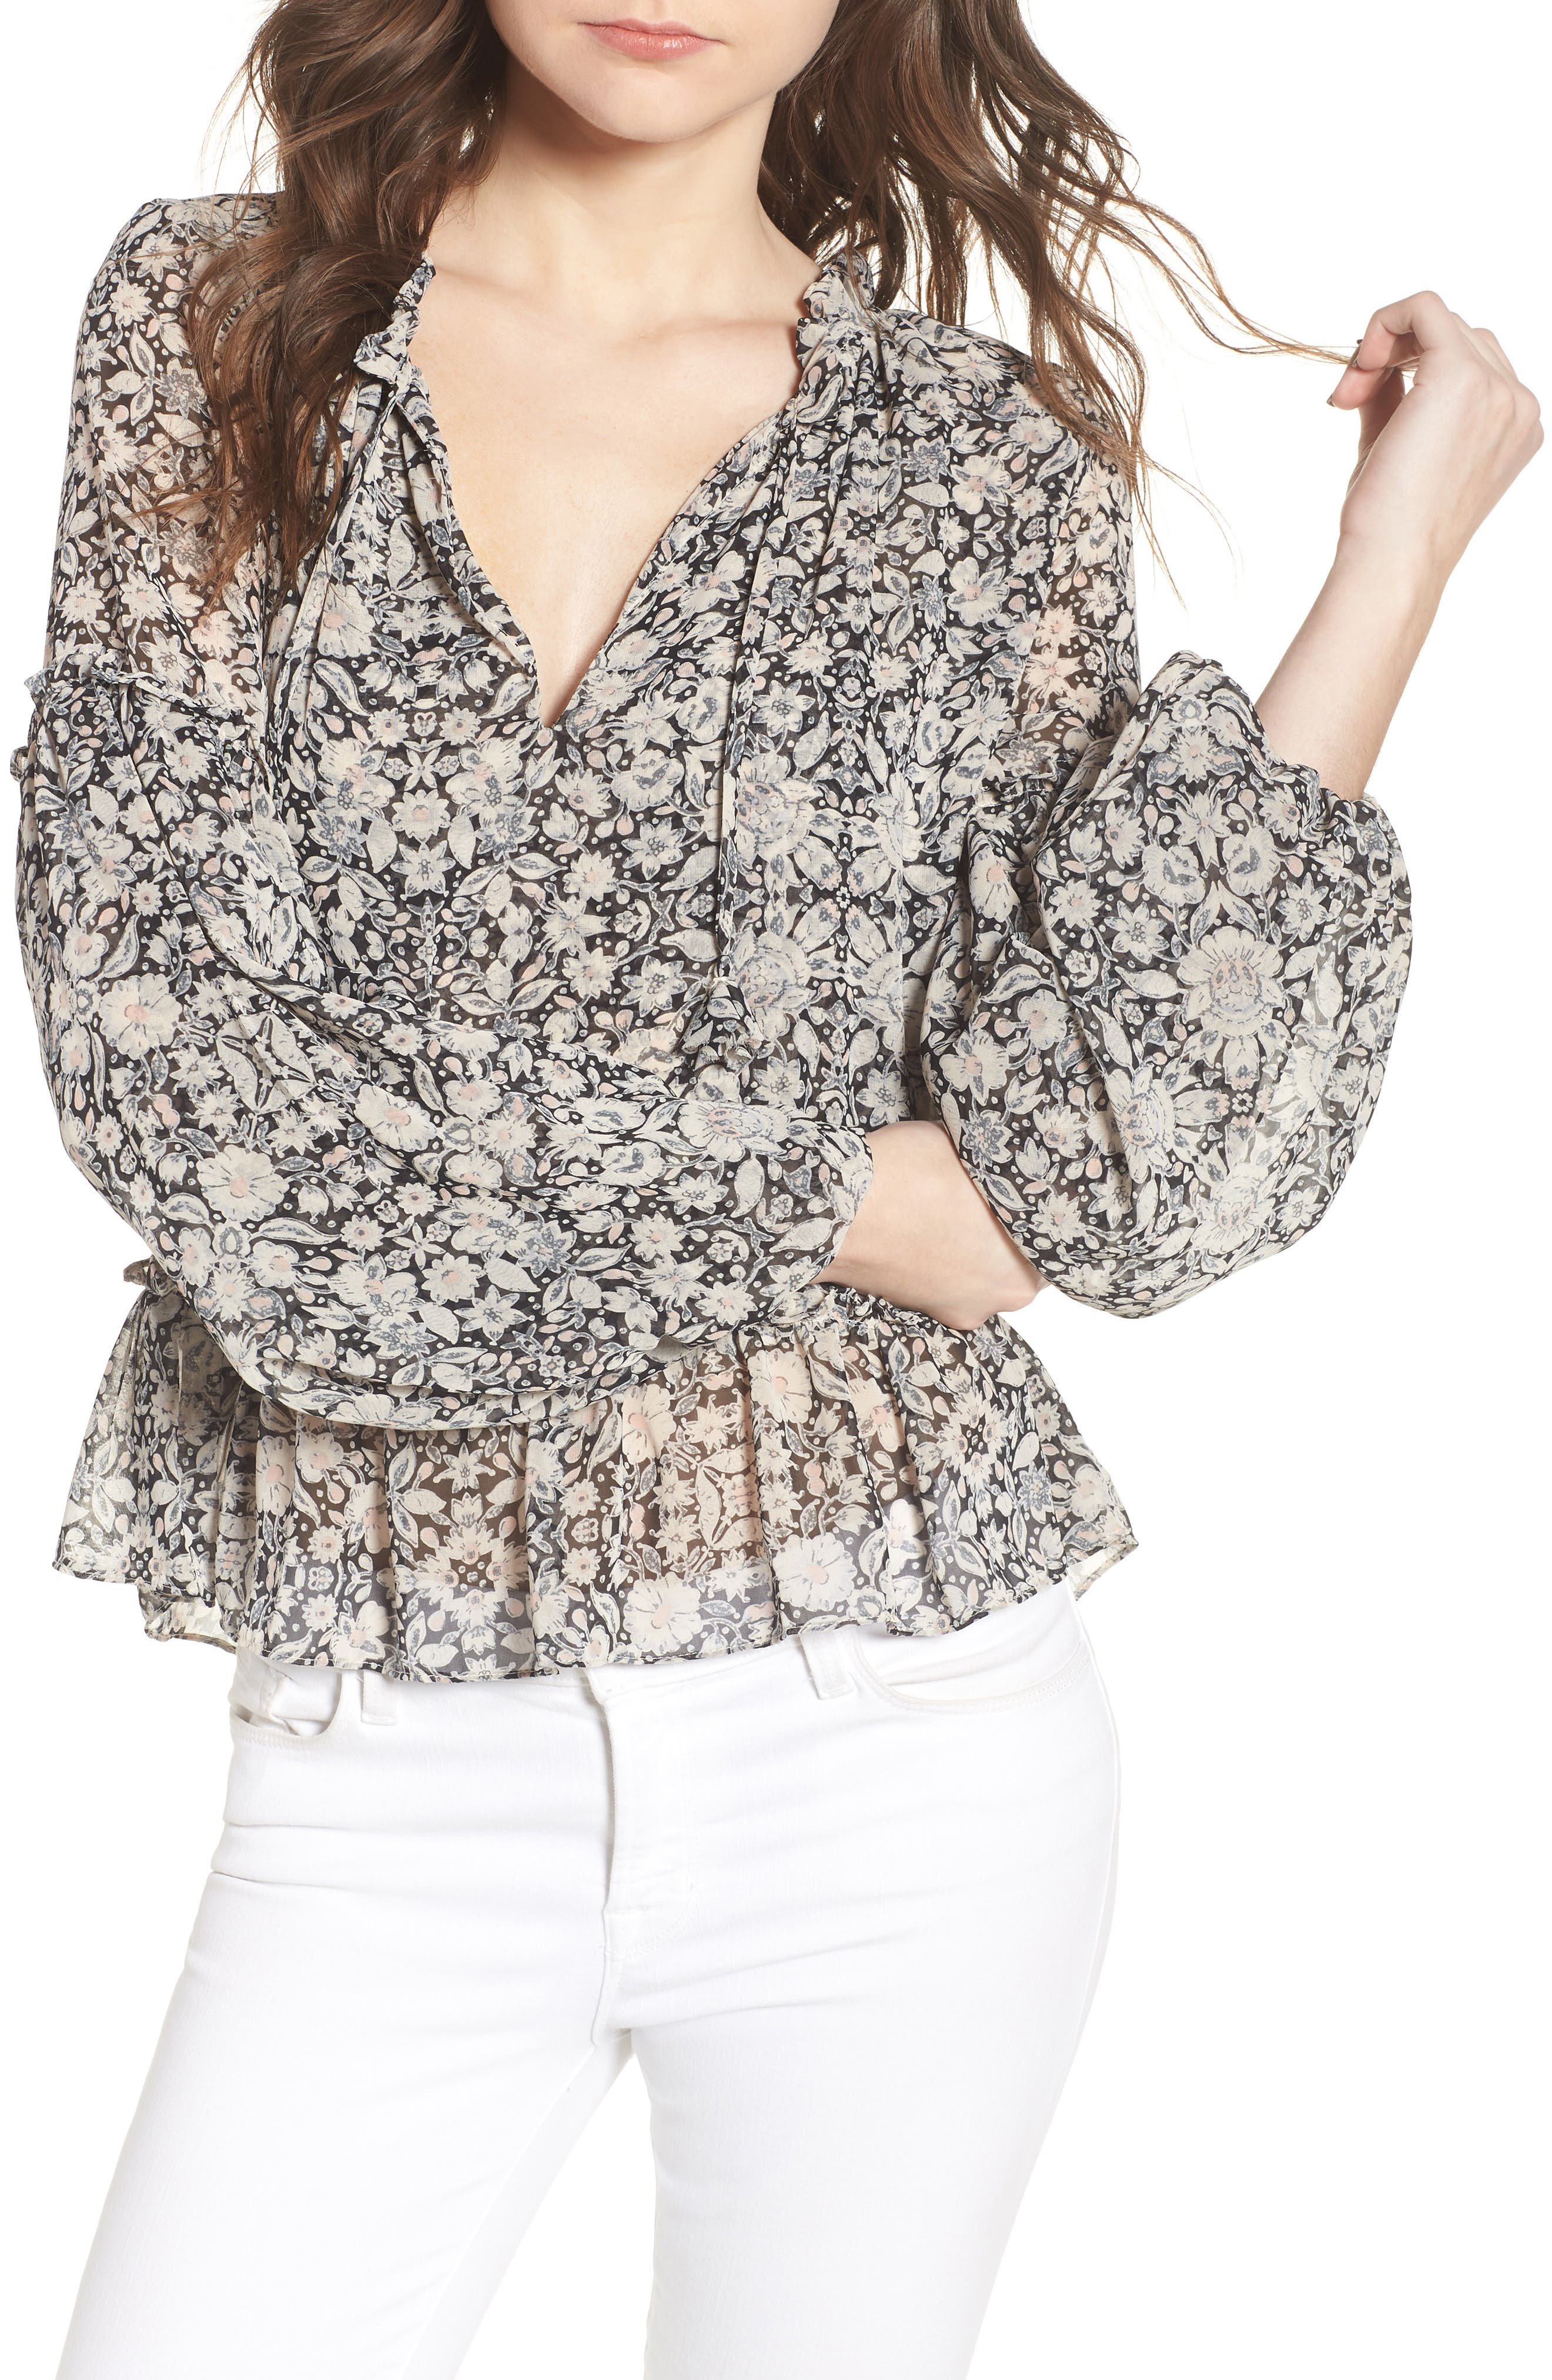 Dominik Floral Peasant Top,                         Main,                         color, Multi Fe8